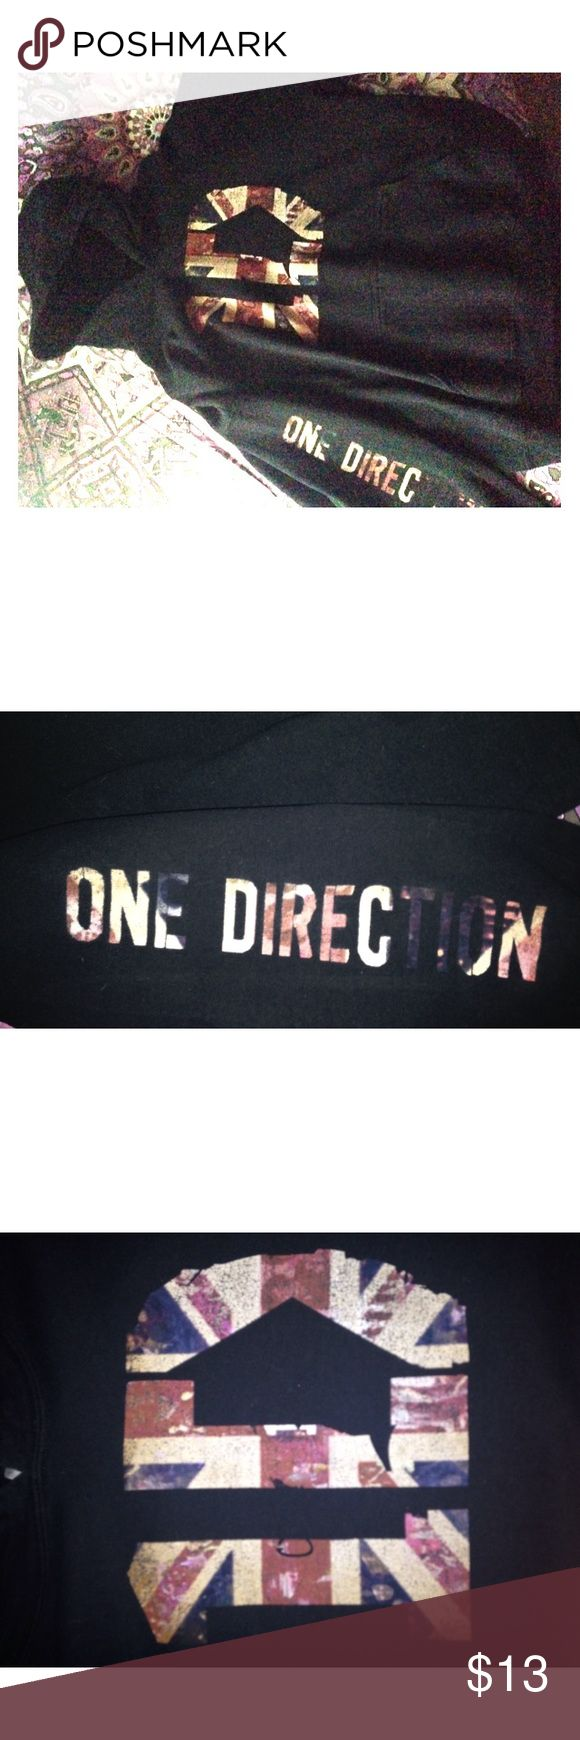 One Direction (1D) black hoodie One Direction logo in large on the chest of the hoodie, 'One Direction' printed along the right sleeve, printing in the color of red white and blue (Britain's flag), pocket in the front, worn only once Tops Sweatshirts & Hoodies